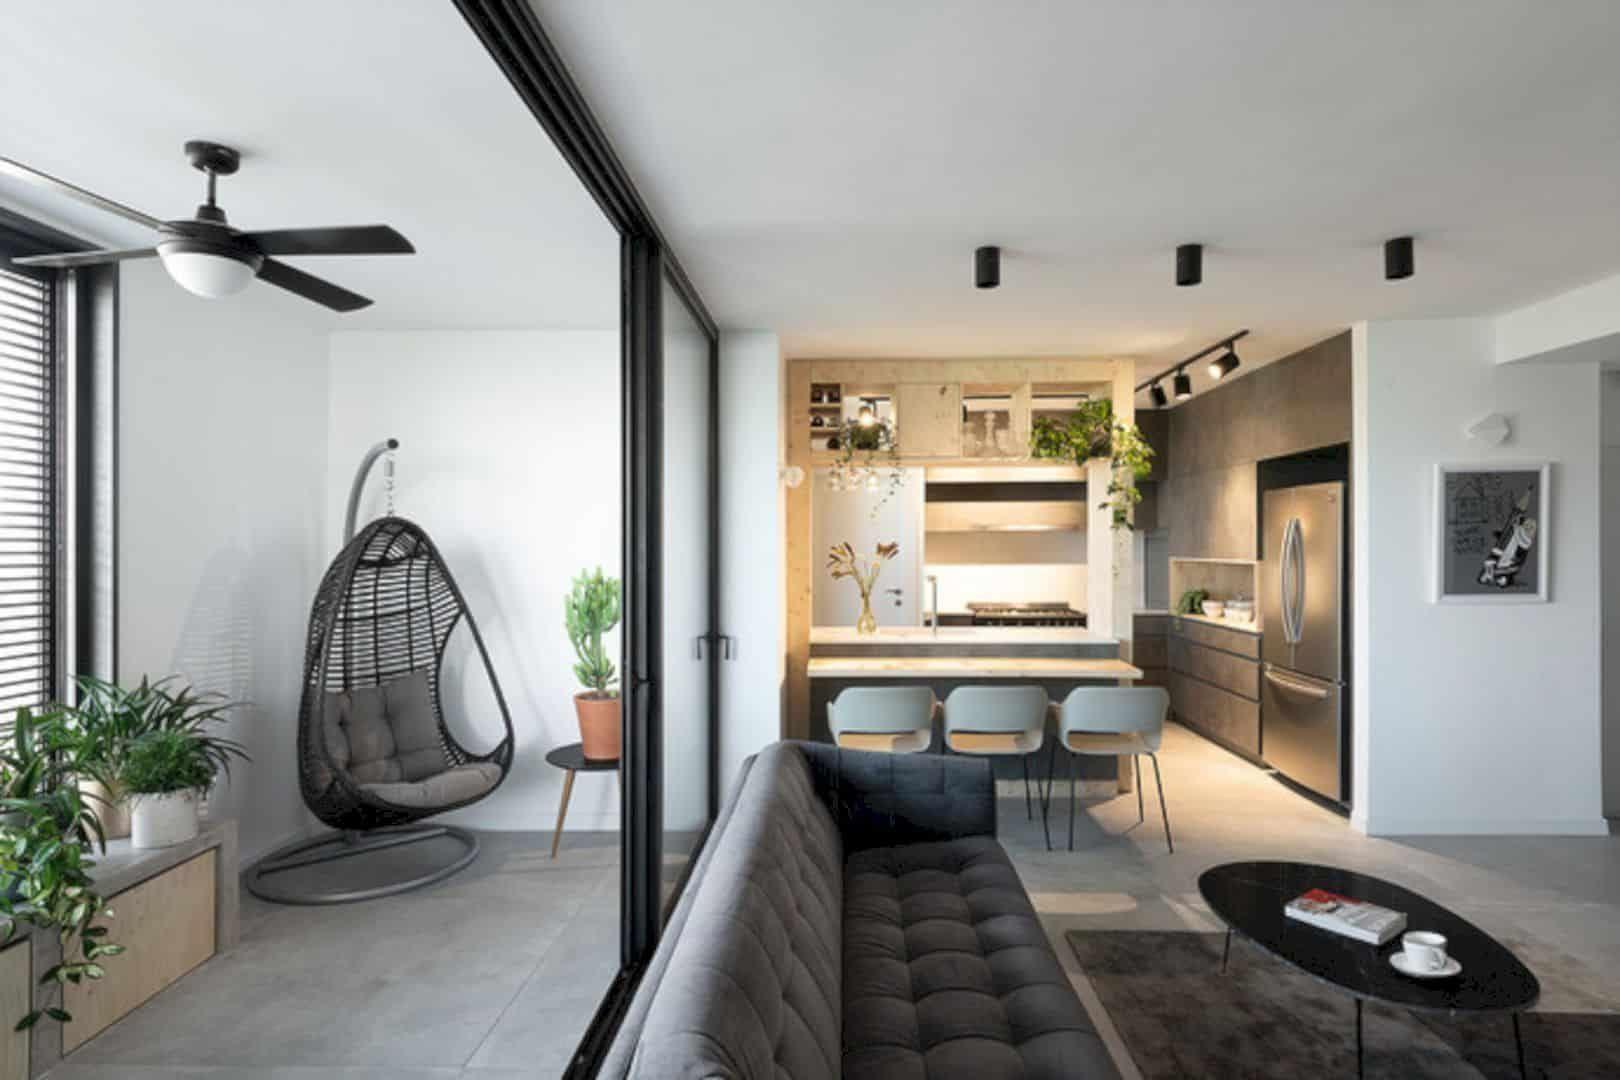 TLV Apartment 21: A Renovation of Modern Urban Apartment with